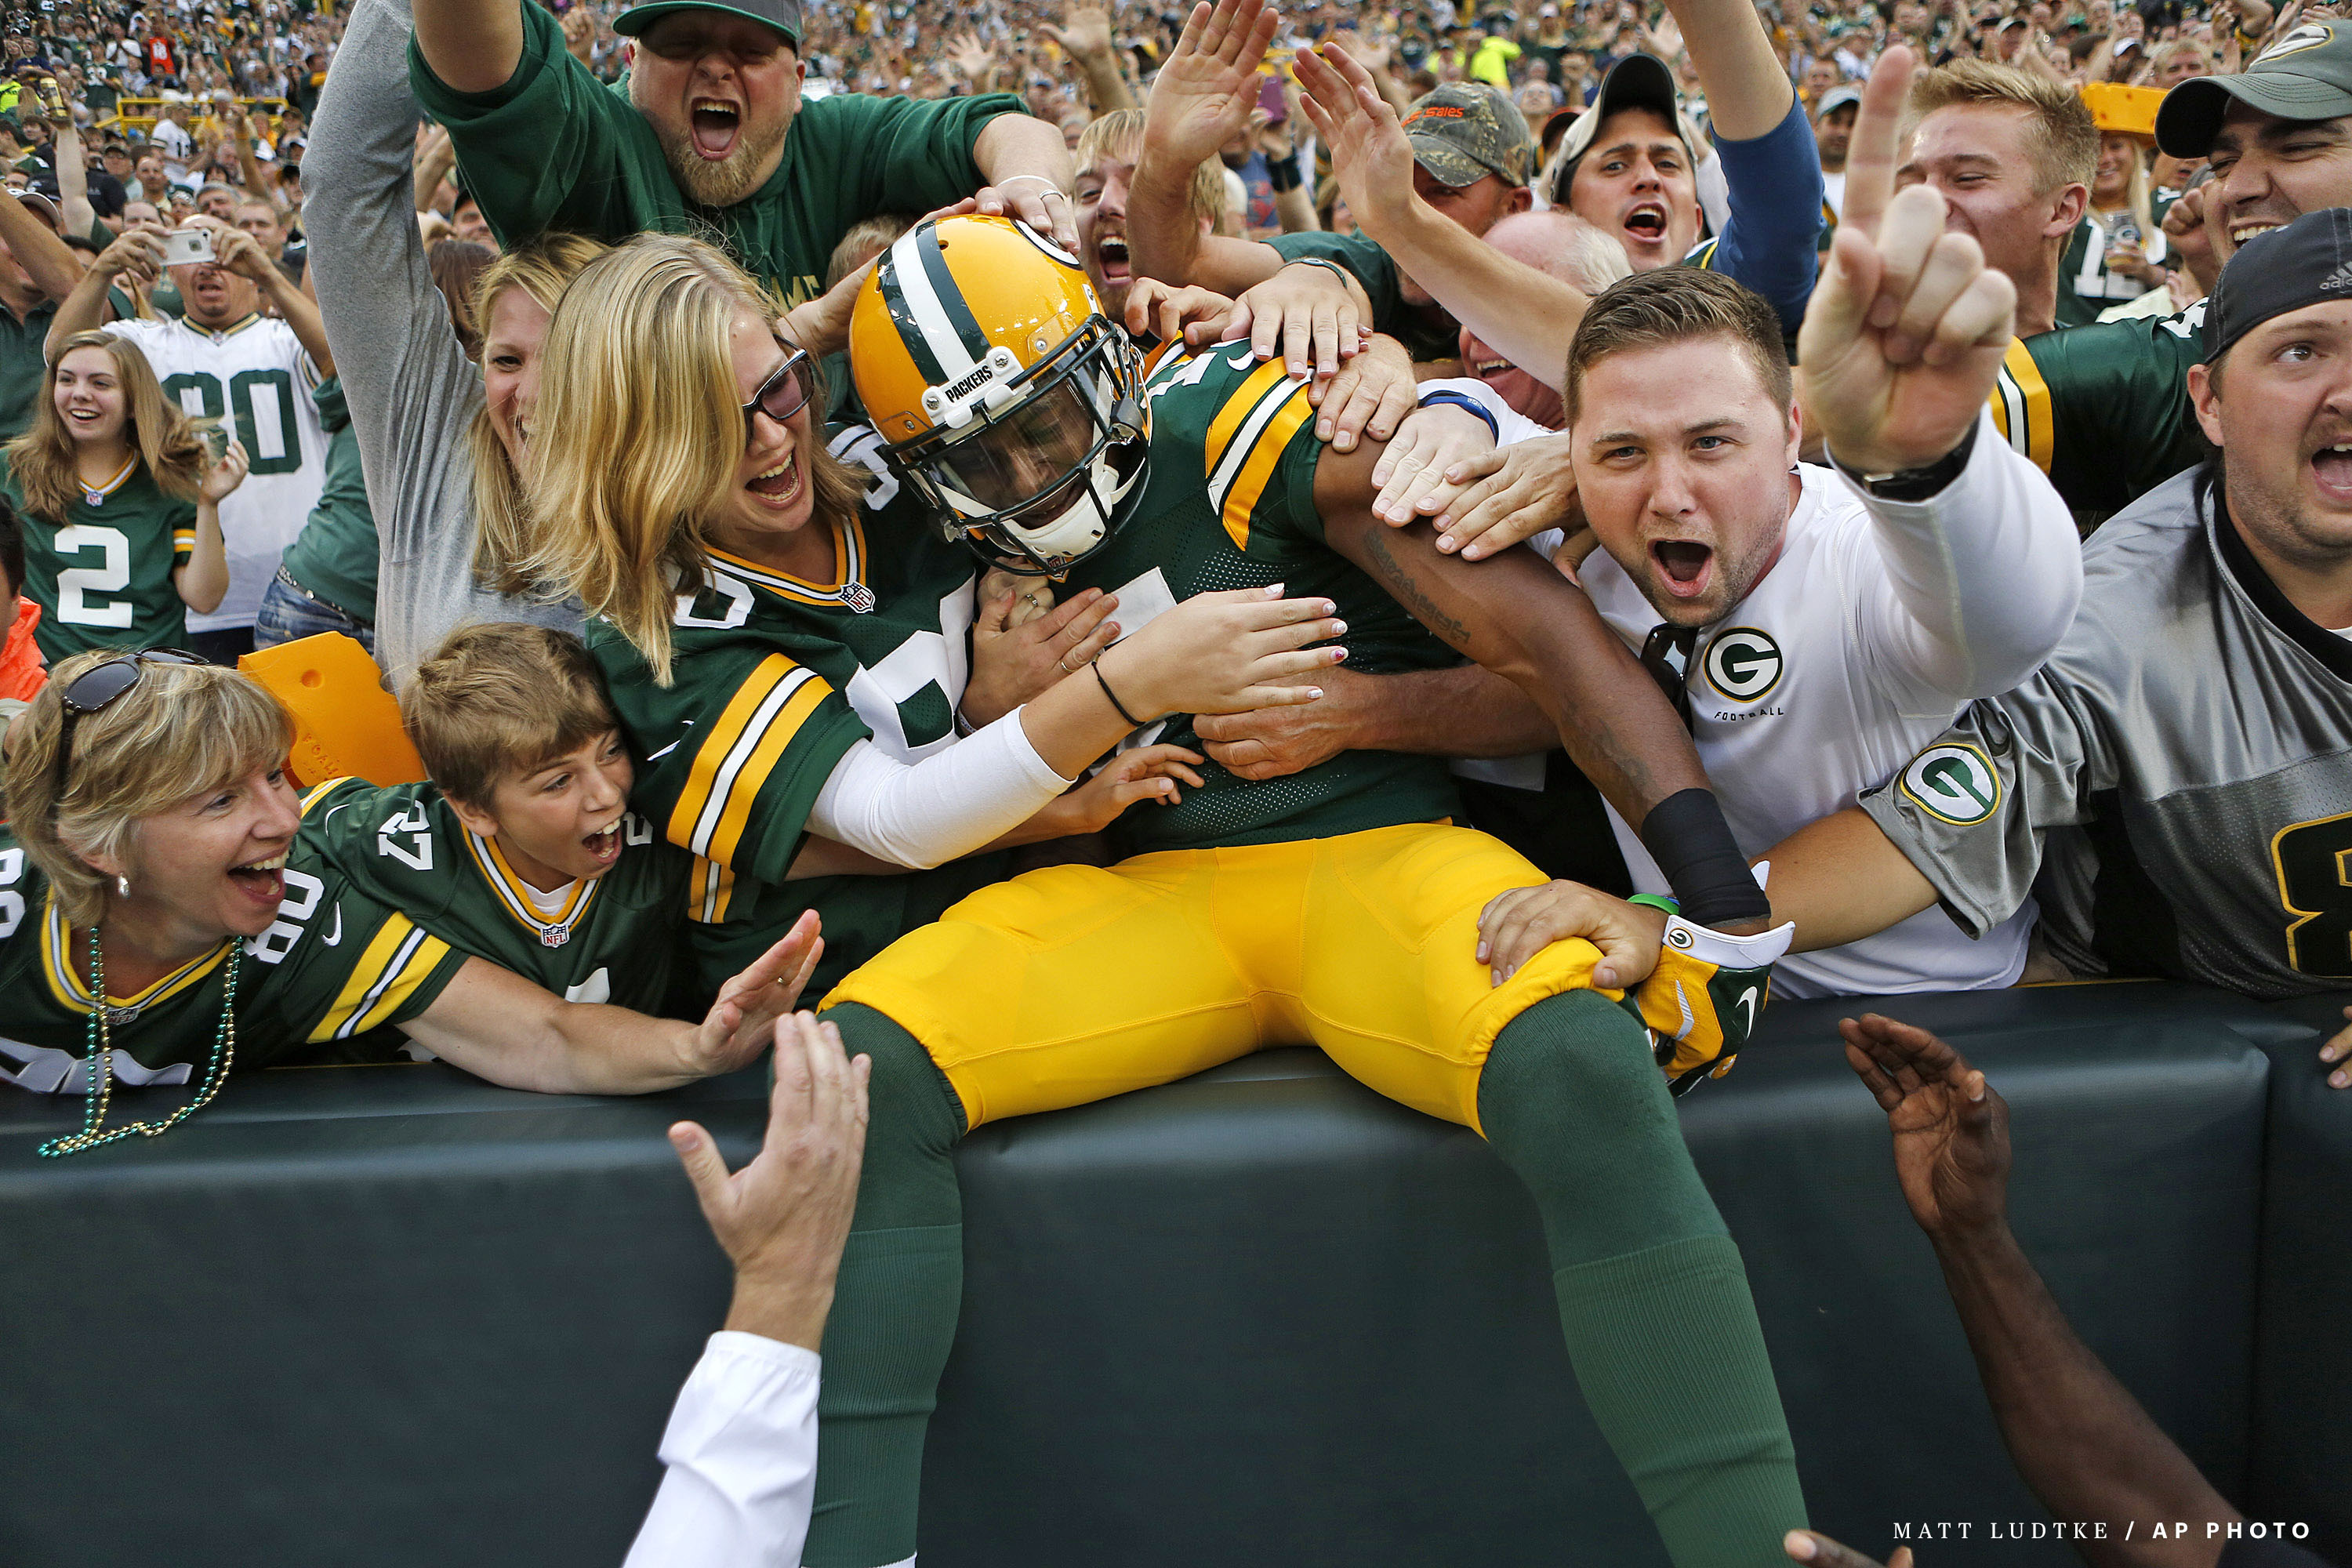 Green Bay Packers wide receiver Davante Adams leaps into the stands after scoring a touchdown against the Kansas City Chiefs during an NFL pre-season football game Thursday Aug. 28, 2014, in Green Bay, Wis. (AP Photo/Matt Ludtke)